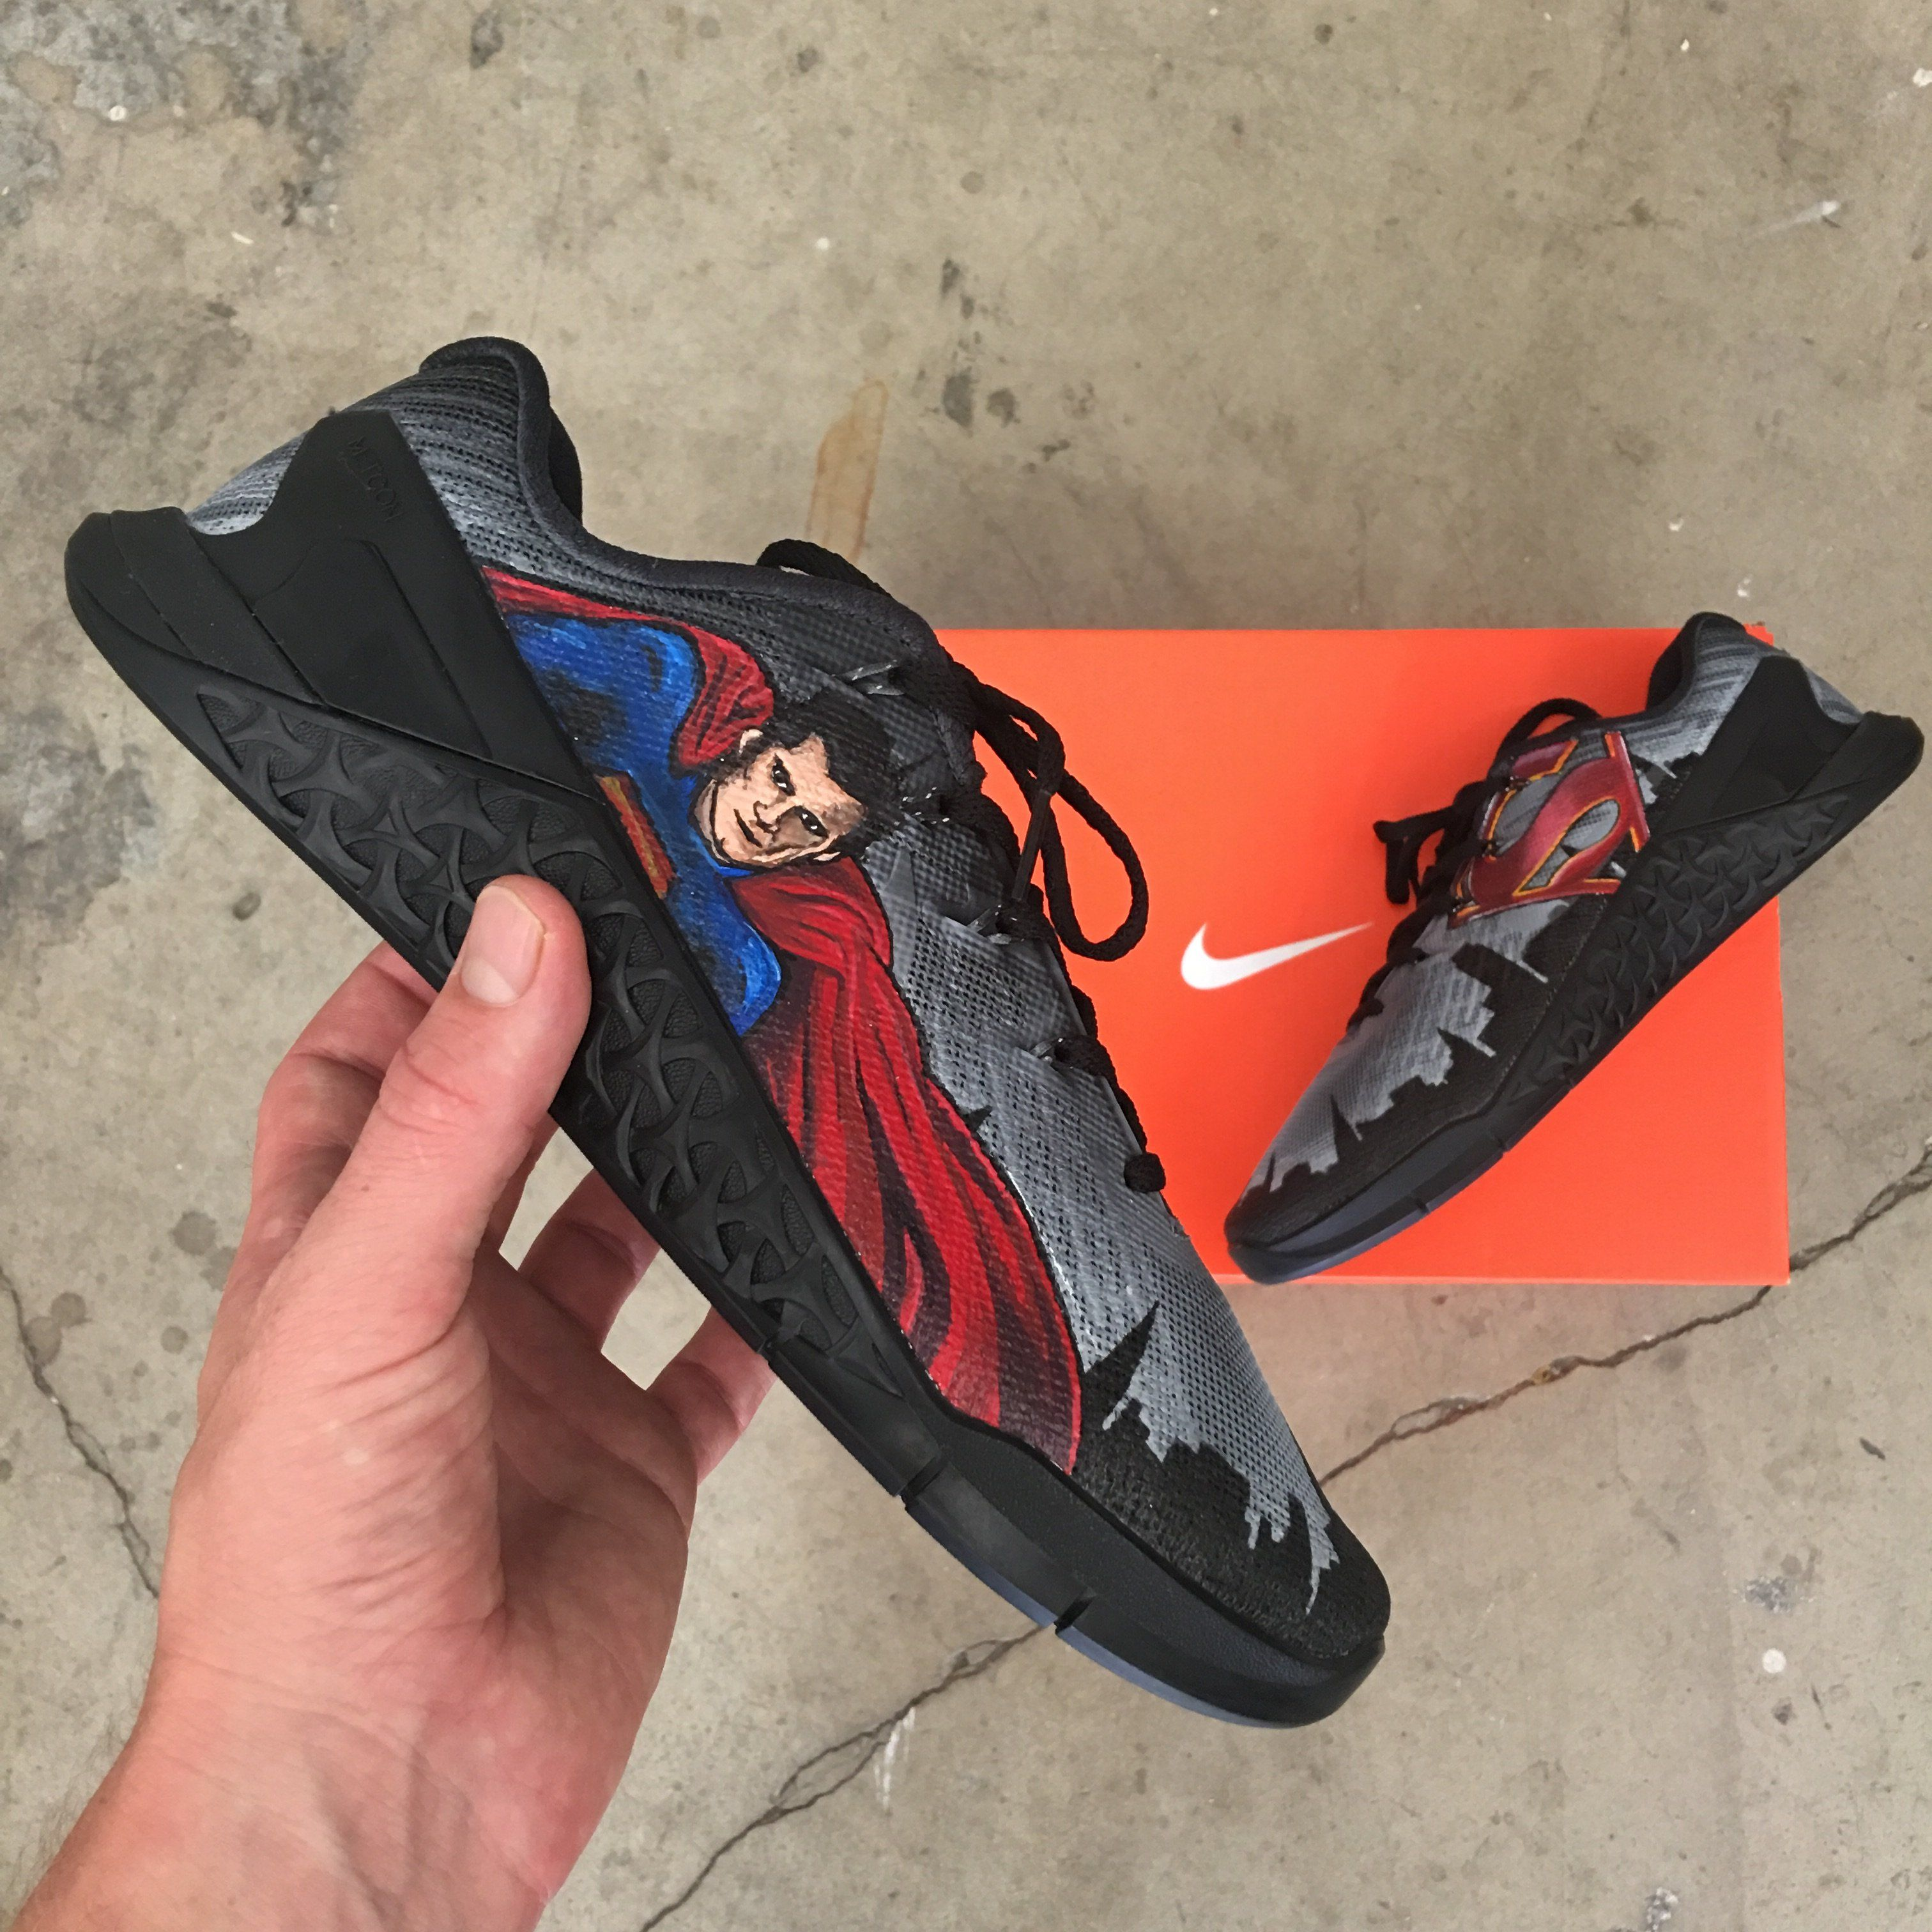 ca9c7b2860e12 Illustrated on these custom Nike Metcon 4 s are Superman Man of Steel on one  side and his shield-like emblem on the other